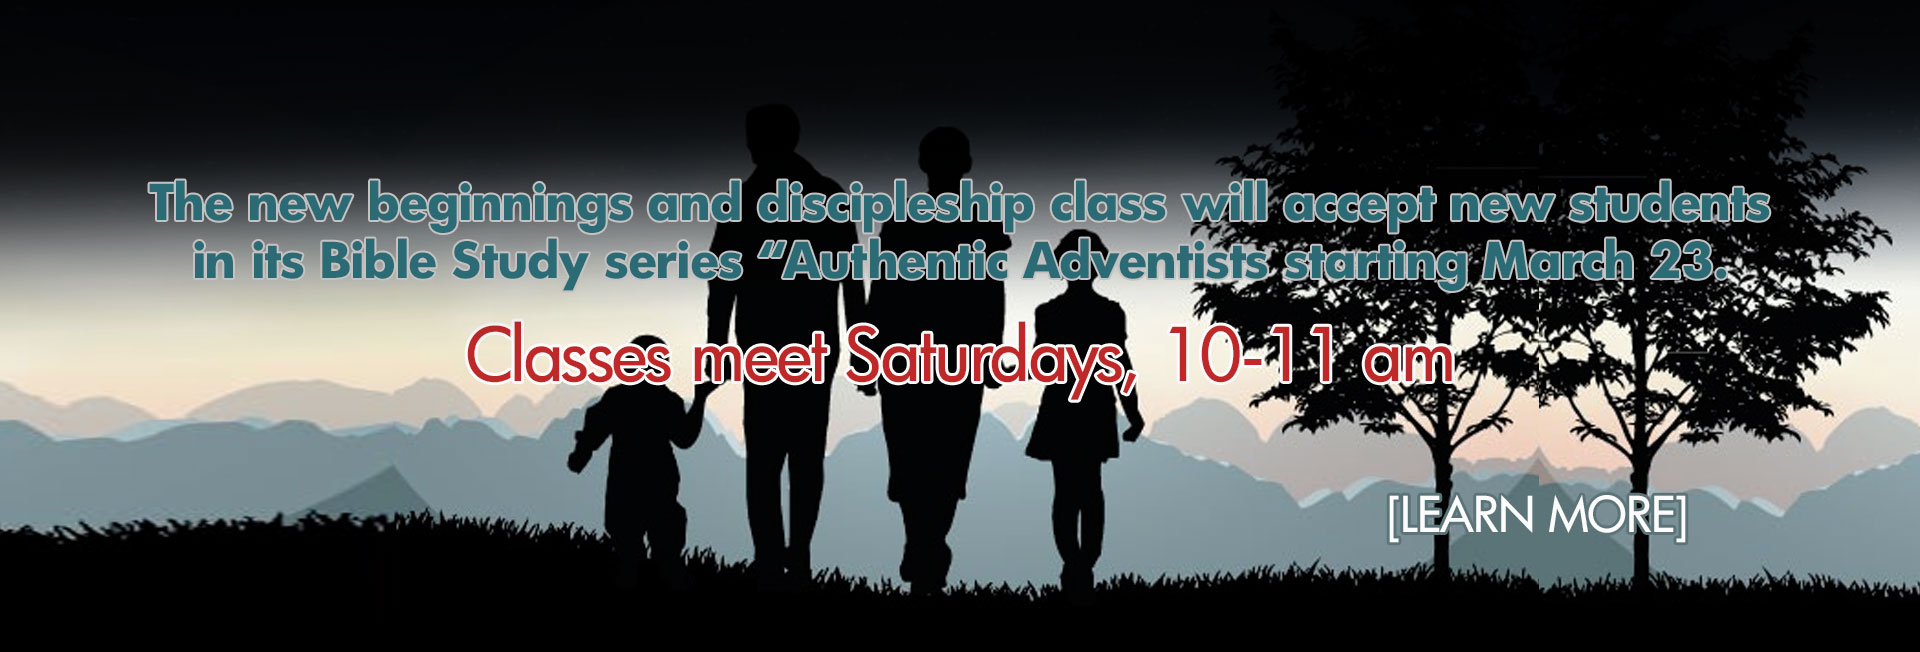 "New Class ""Authentic Adventists"" Starts March 23, every Saturday 10-11am"